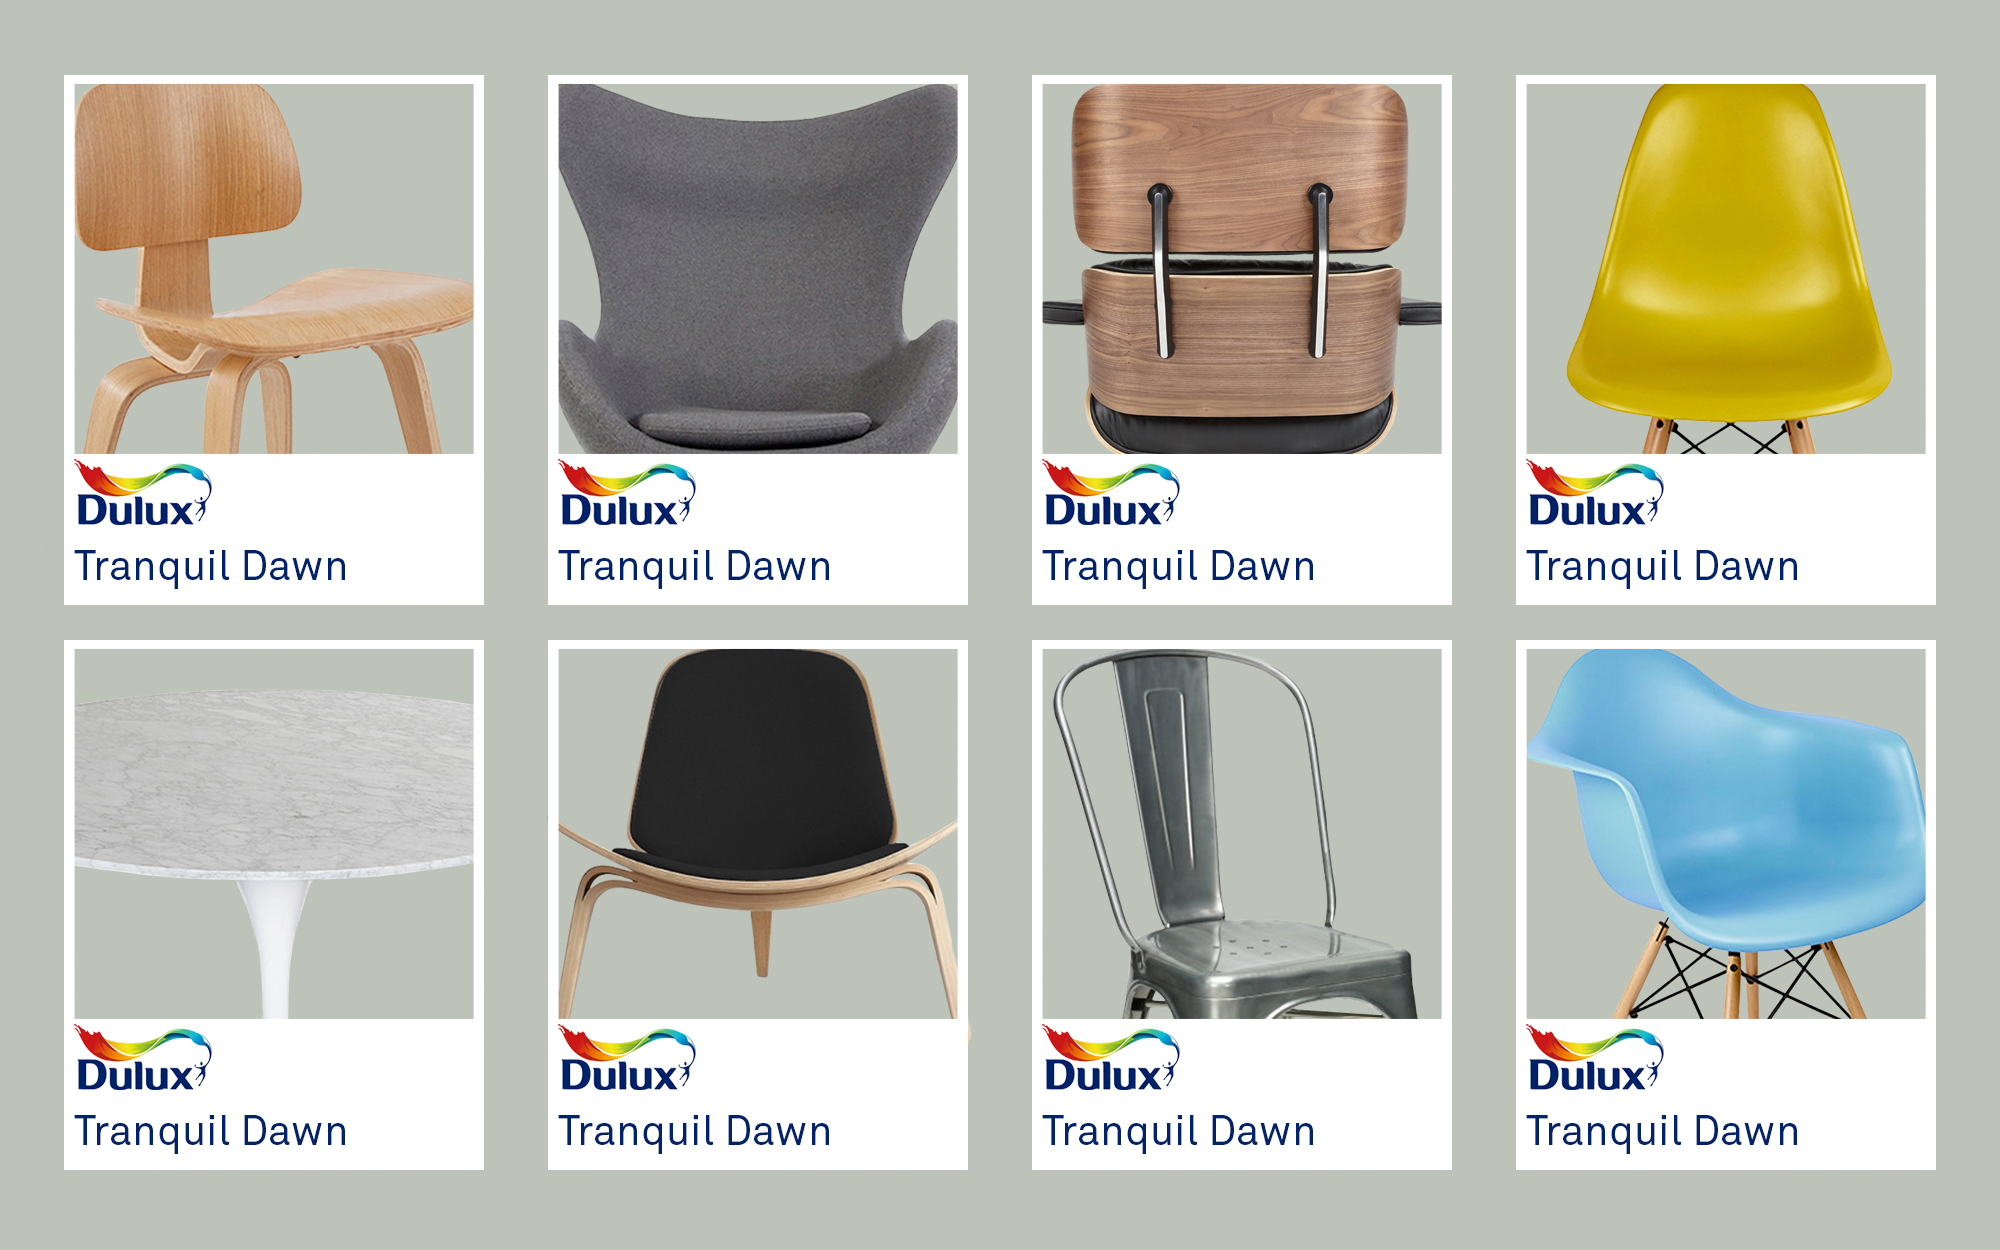 Dulux Tranquil Dawn Complemented With Pash Products